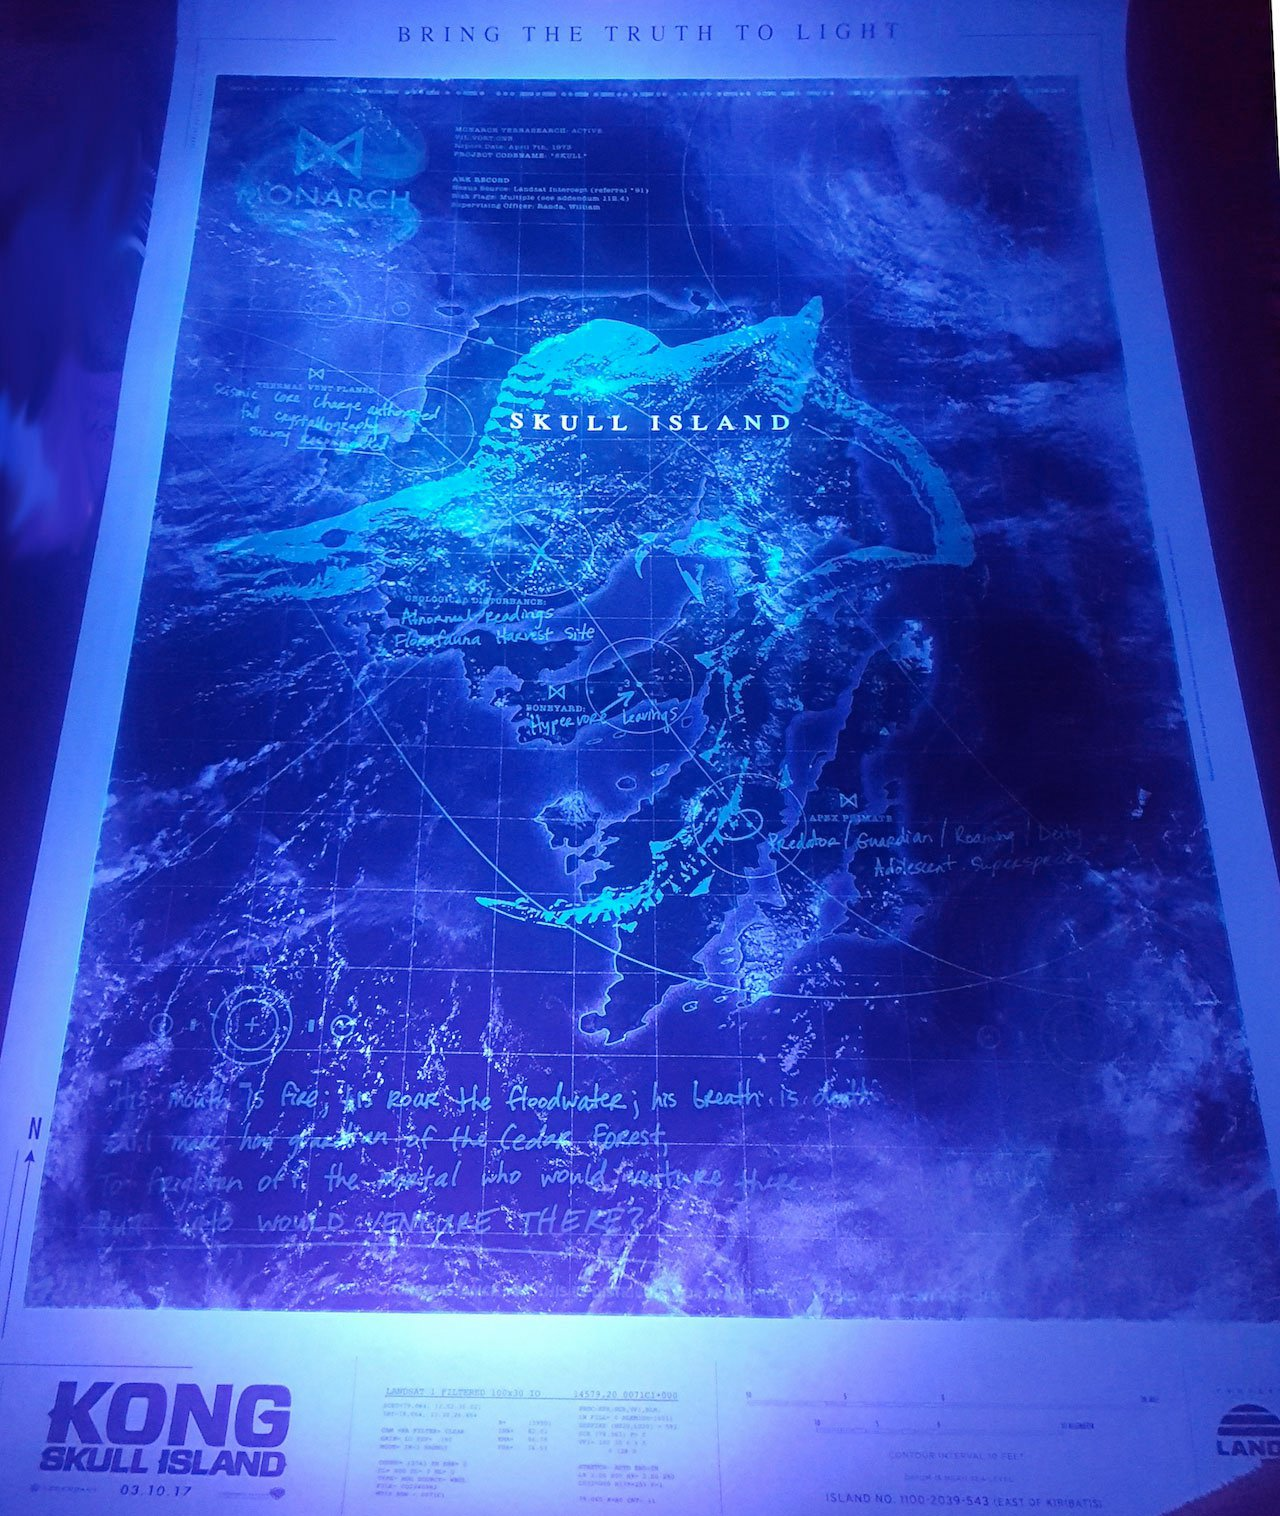 kong-skull-island-poster-viral-black-light